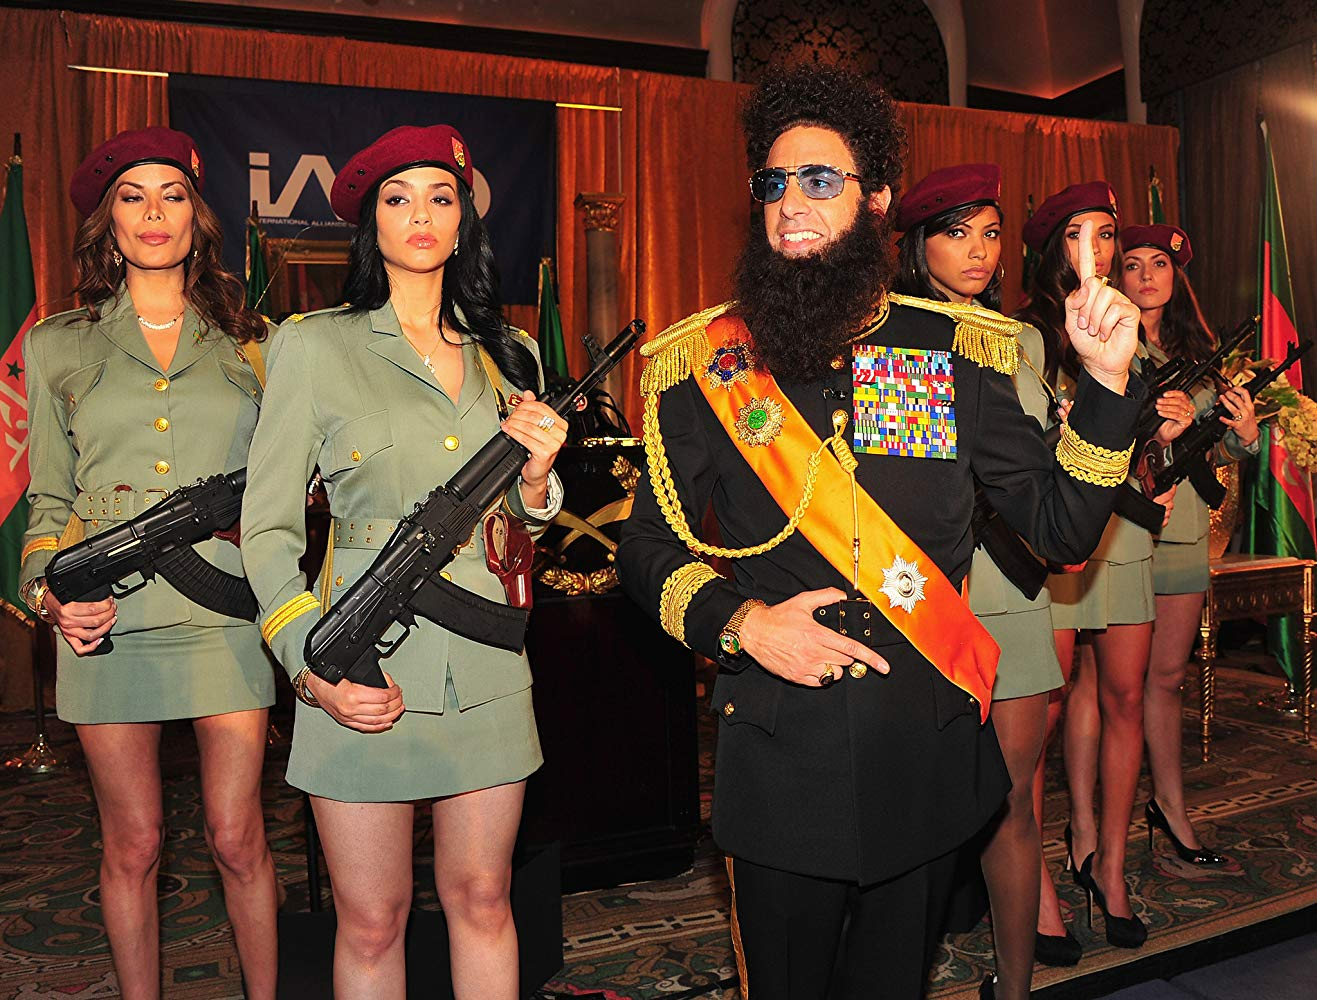 The Dictator (2012) by Sacha Baron Cohen